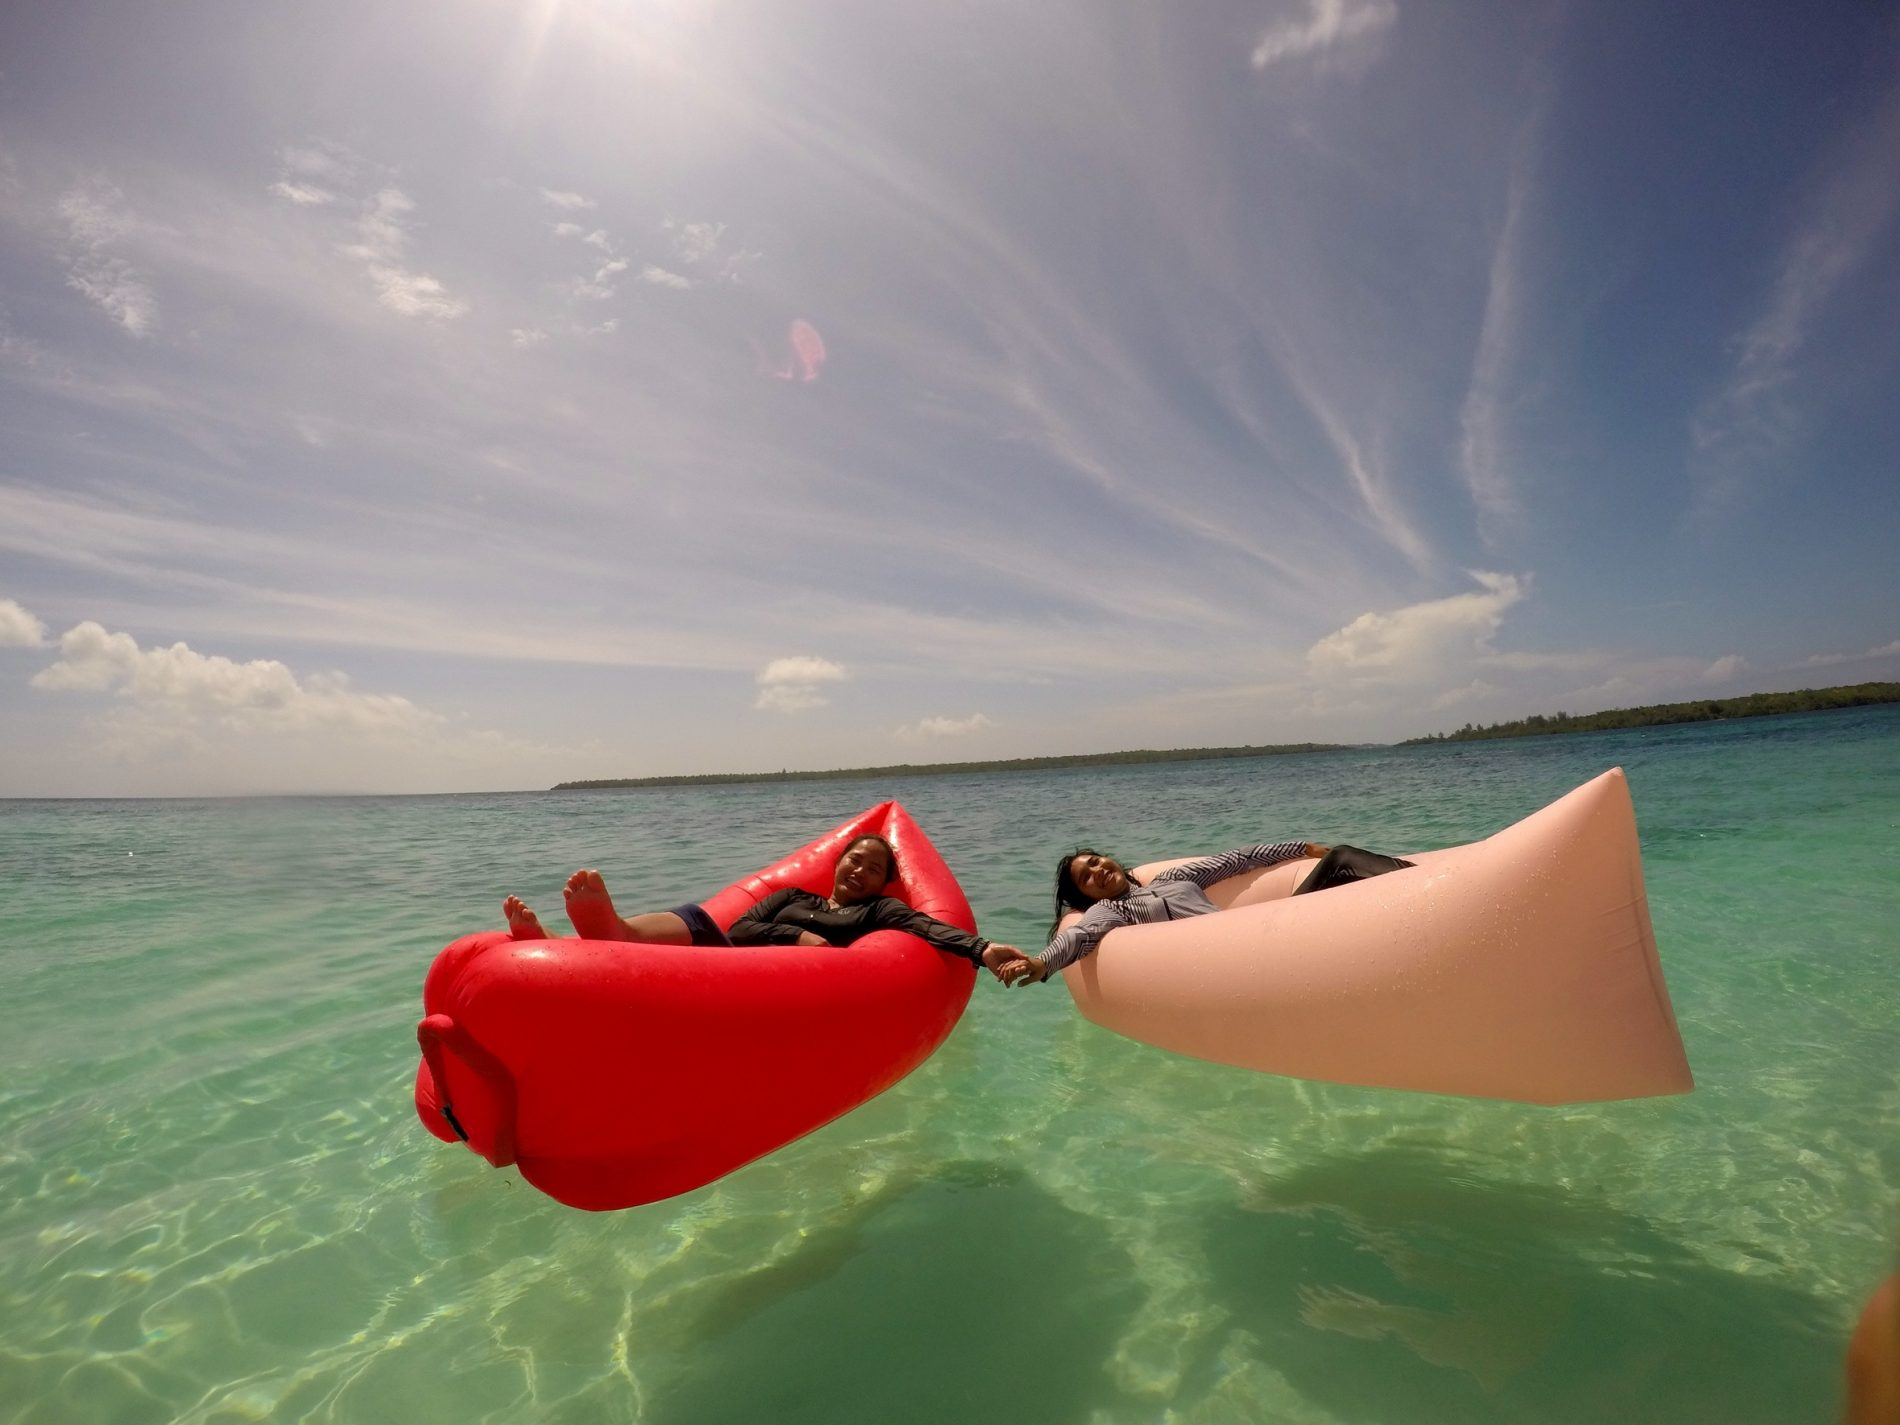 A beautiful day at Adranan Island relaxing on the floats